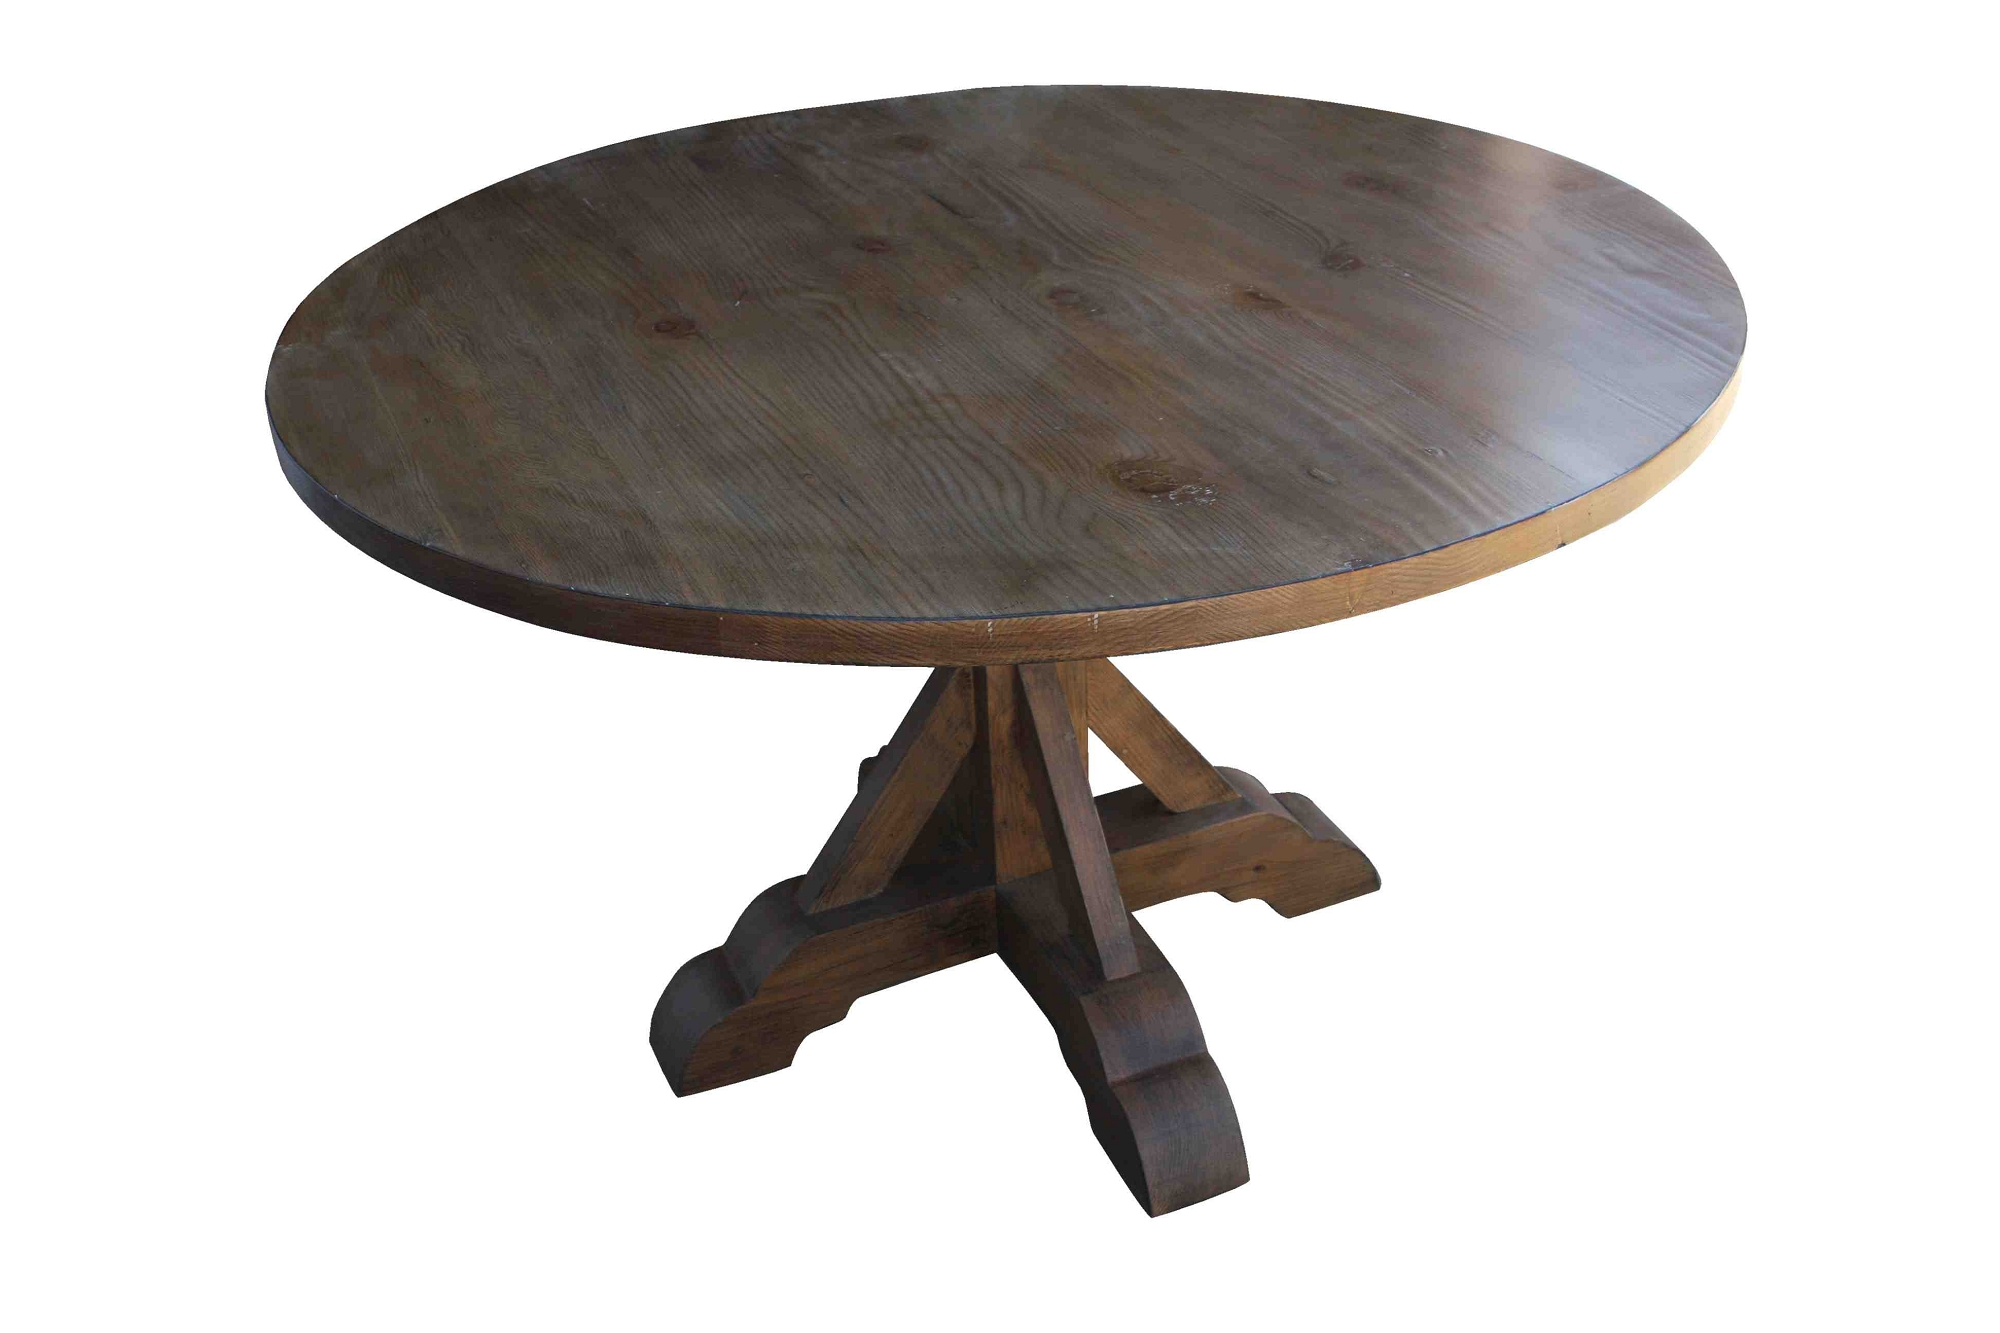 2000x1333px 7 Fabulous Reclaimed Wood Round Dining Table Picture in Furniture